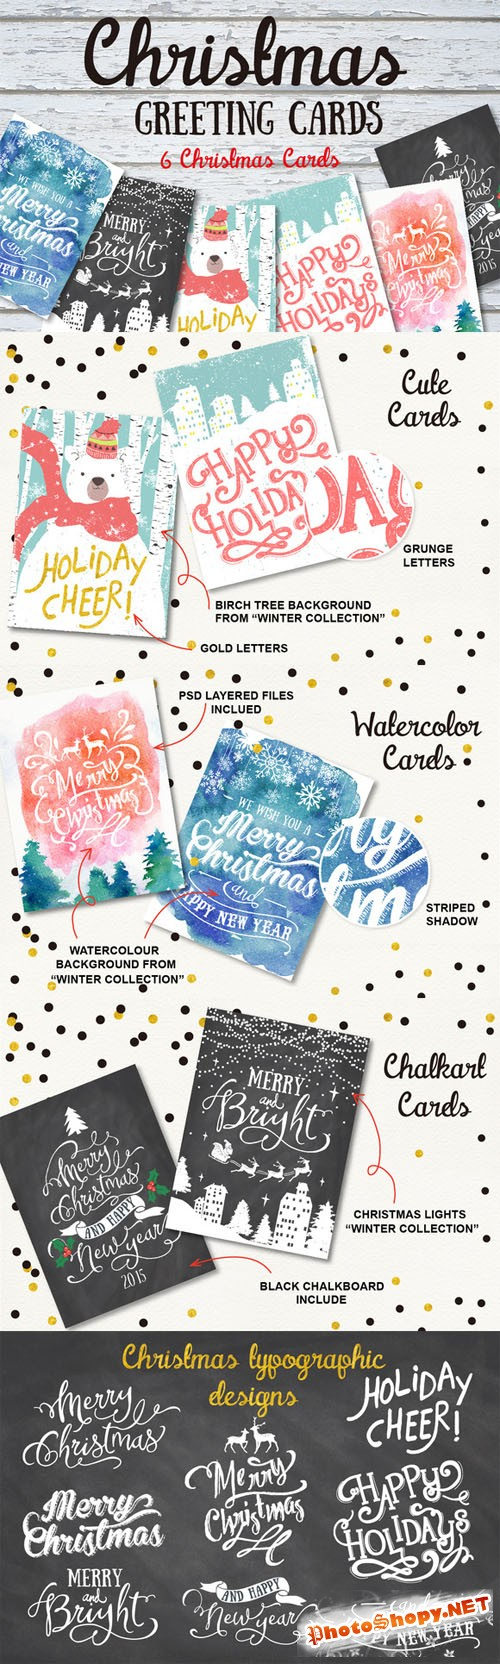 6 Christmas greeting cards set - Creativemarket 132057